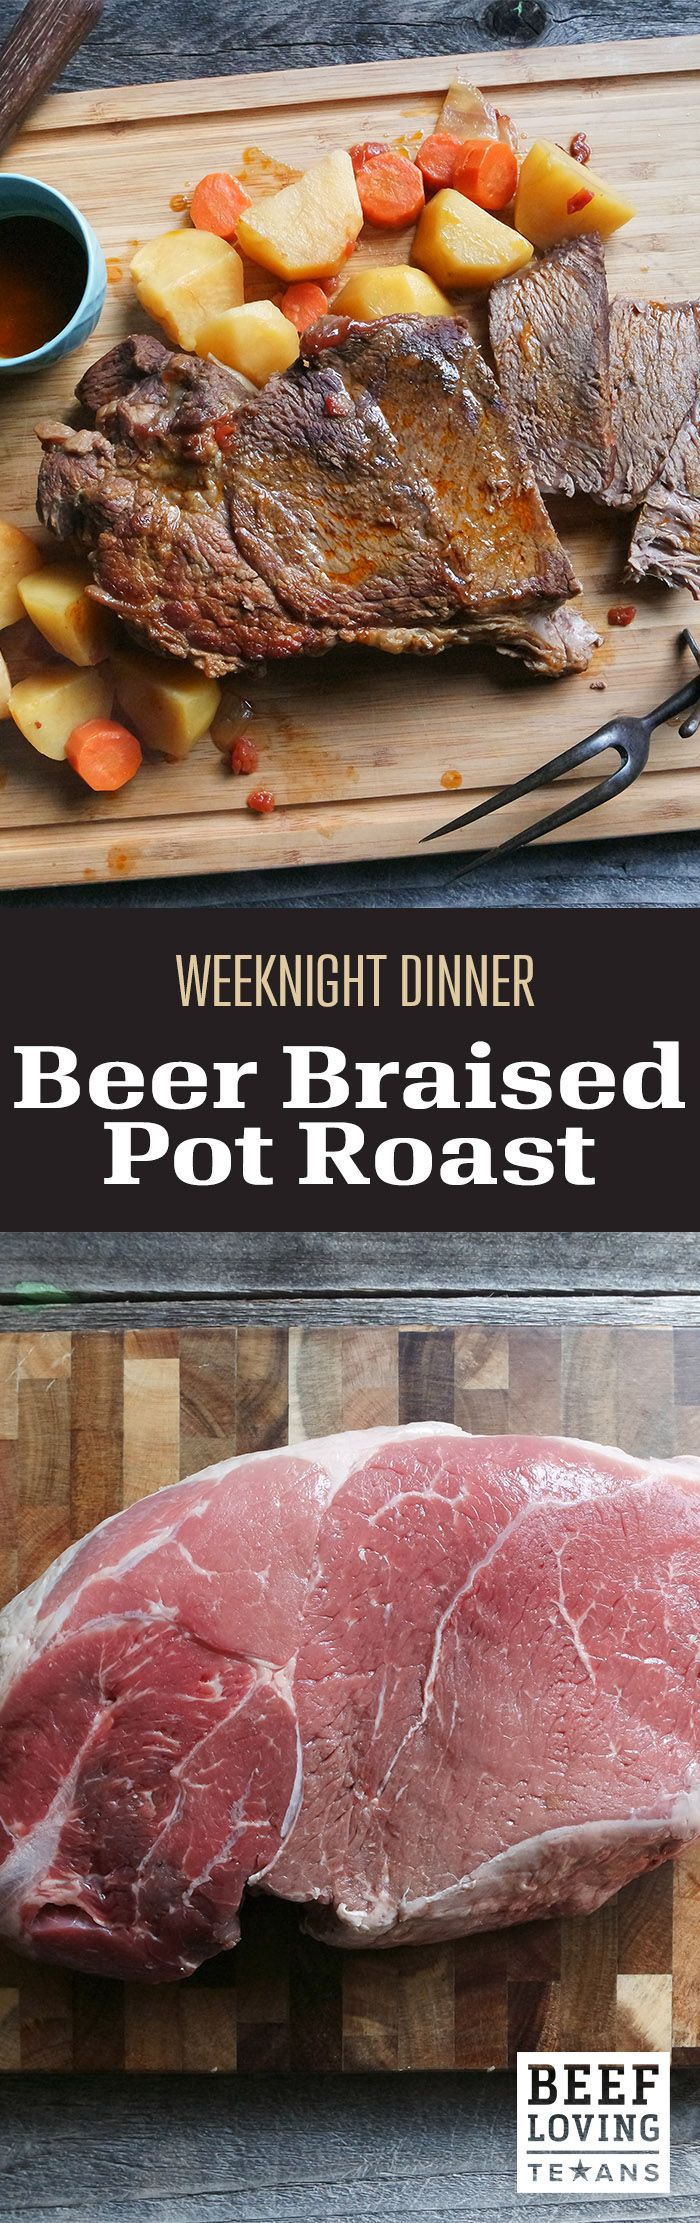 Count on this recipe to bring all the right Texan flavors together. This Beer Braised Pot Roast is easy & the perfect weeknight dinner.